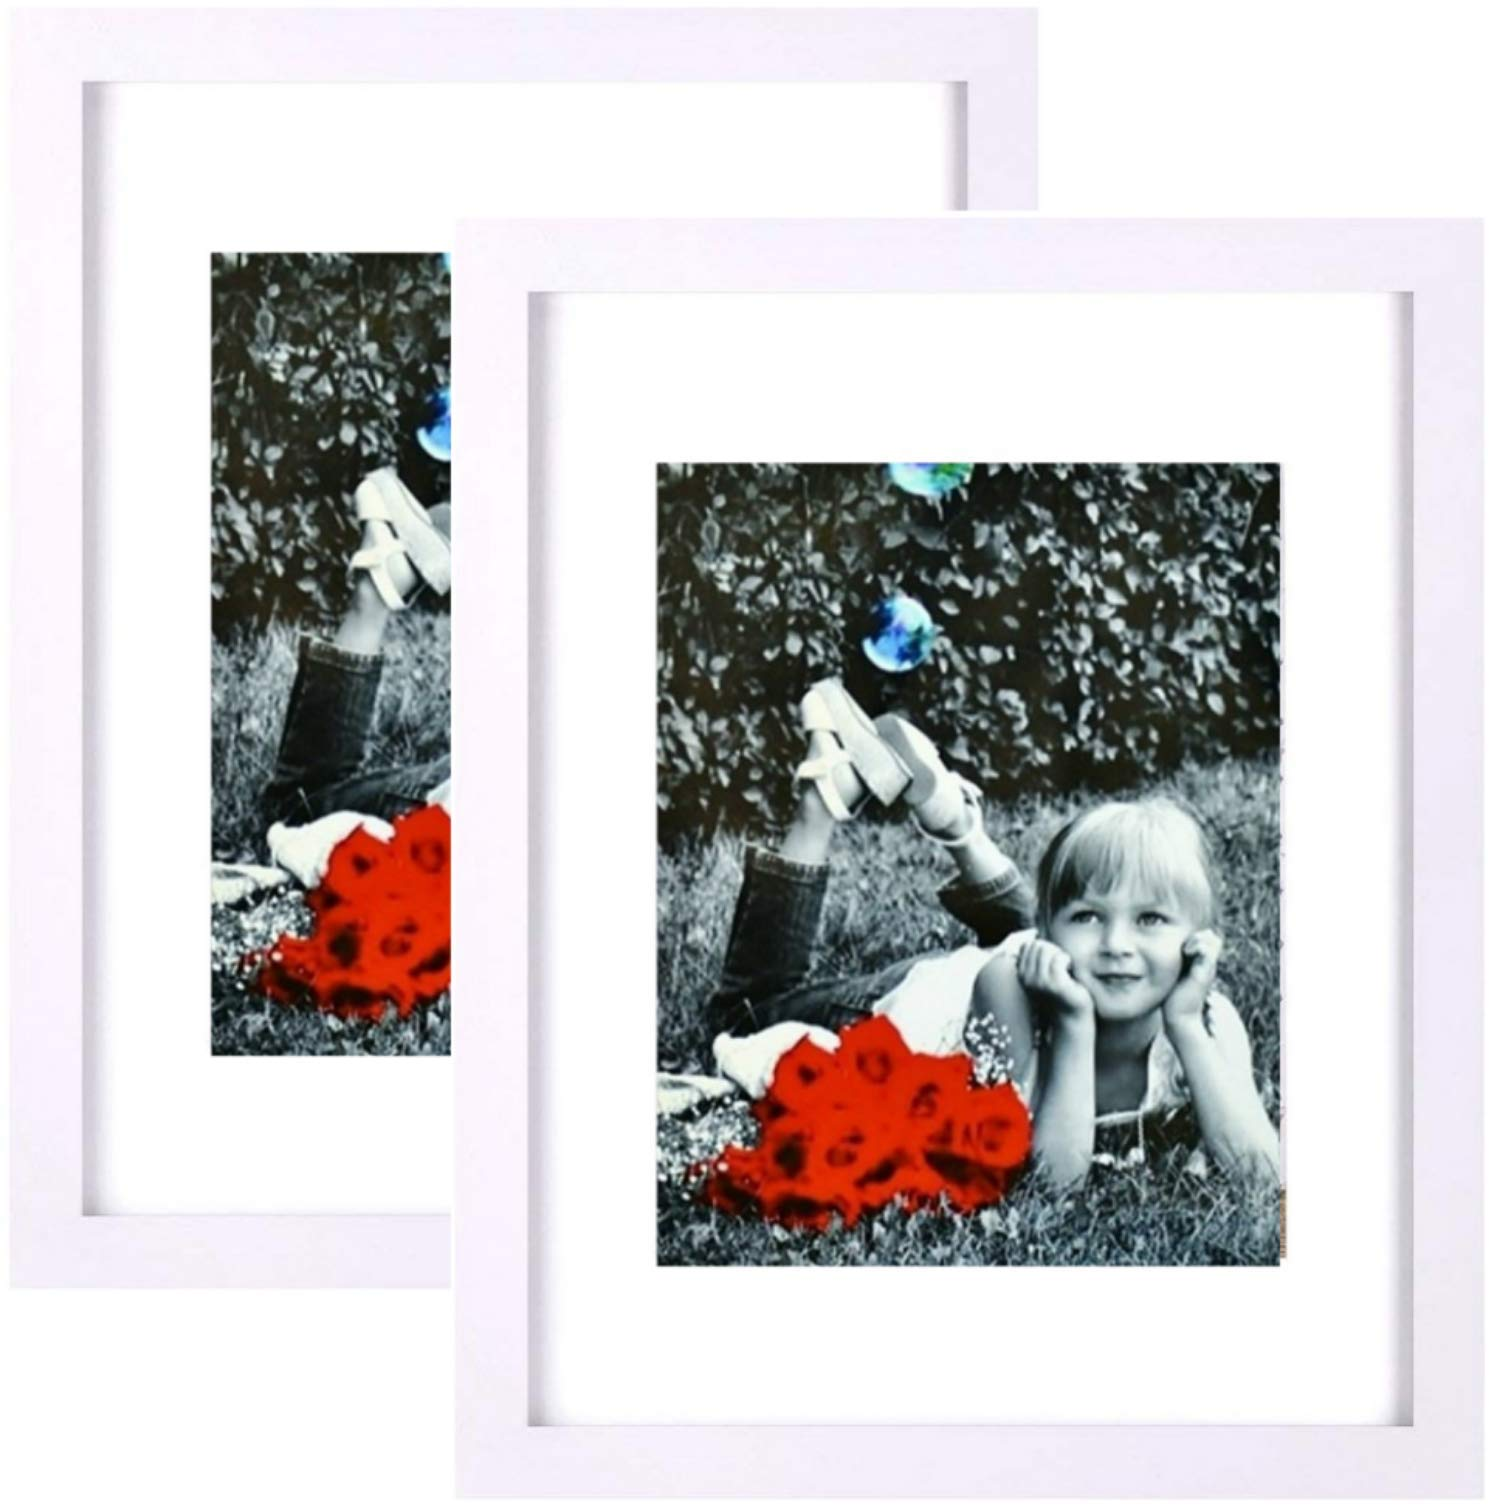 Tasse Verre 11x14 White Picture Frame (2-Pack) - HIGH Definition Glass Front Cover - Displays 11 by 14'' Picture w/o Mat or an 8x10 Photo w/Mat - Vertical or Horizontal Mounts & Comes Ready to Hang by Tasse Verre